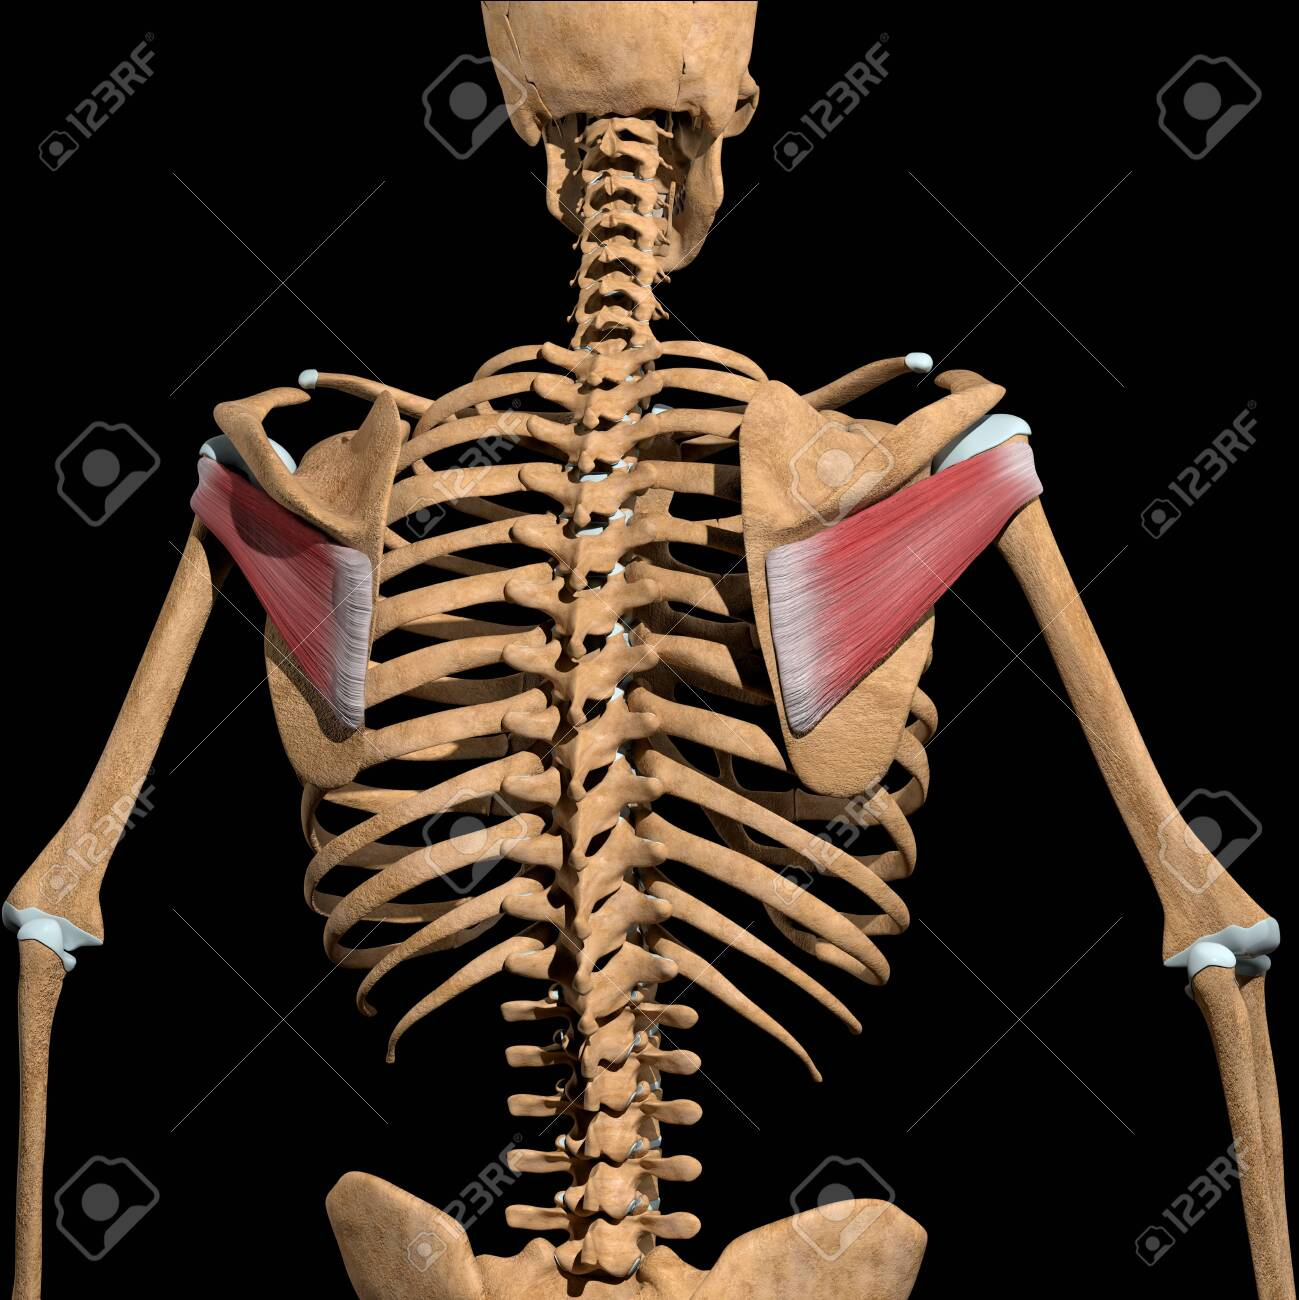 This 3d illustration shows the infraspinatus muscles on skeleton - 141625565